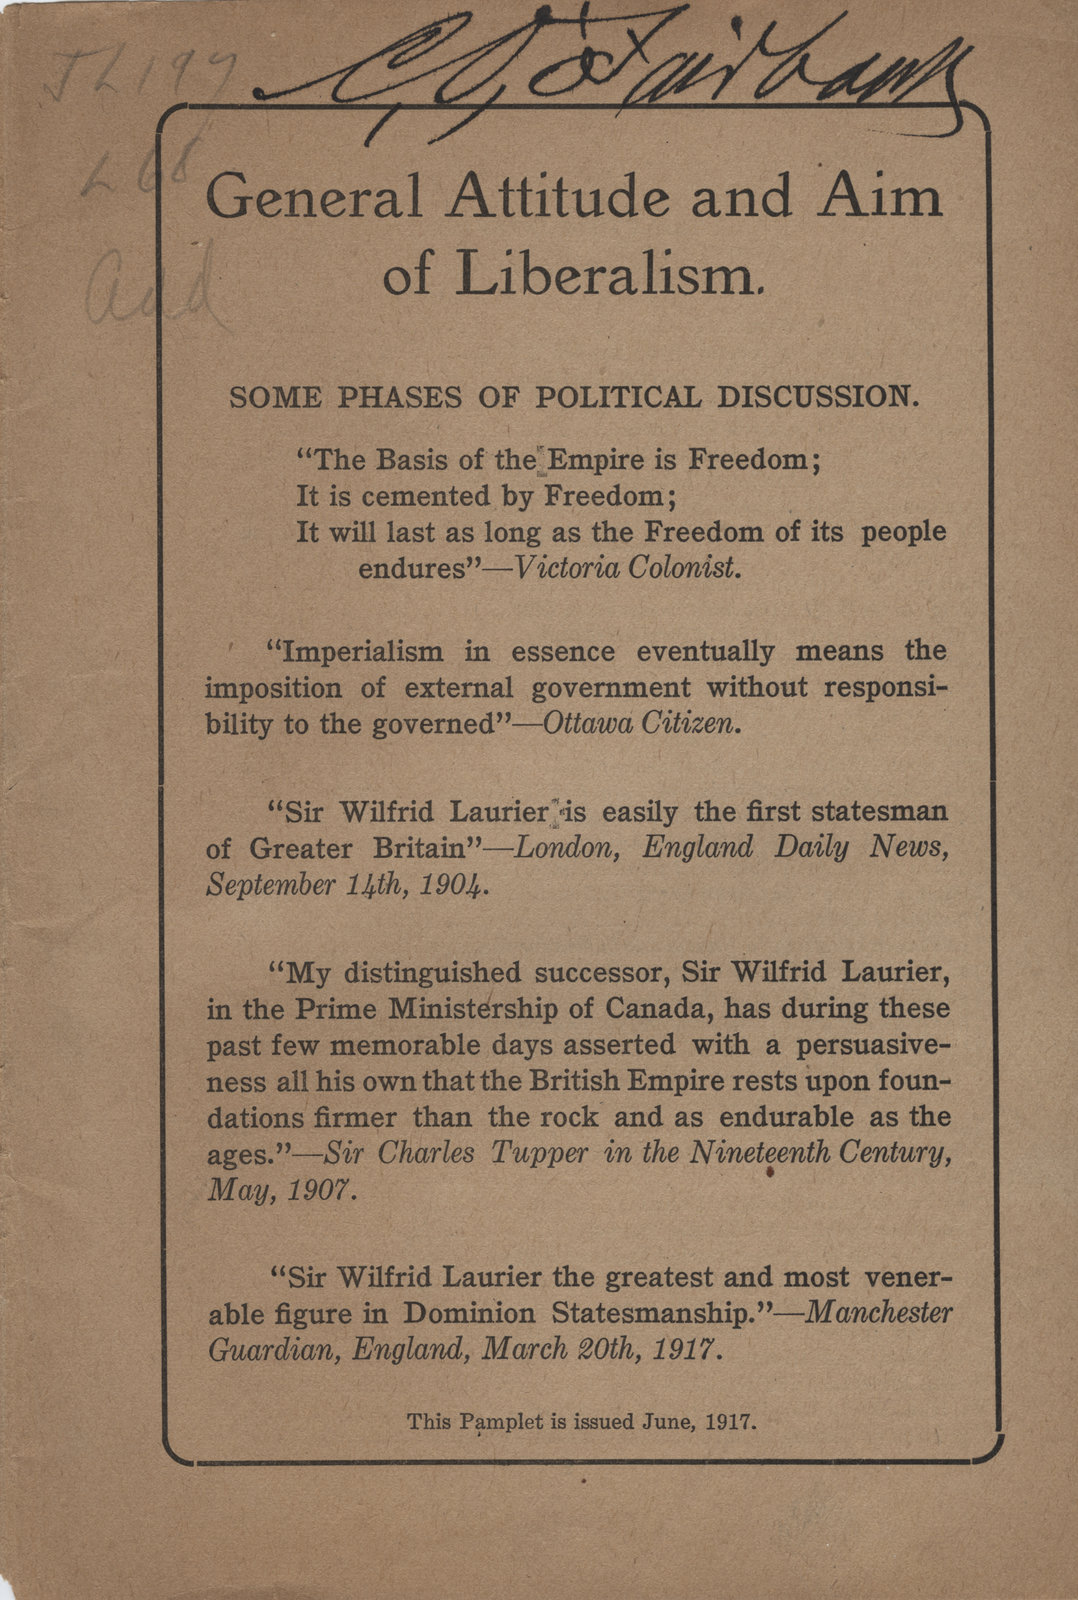 General attitude and aim for Liberalism : some phases of political discussion